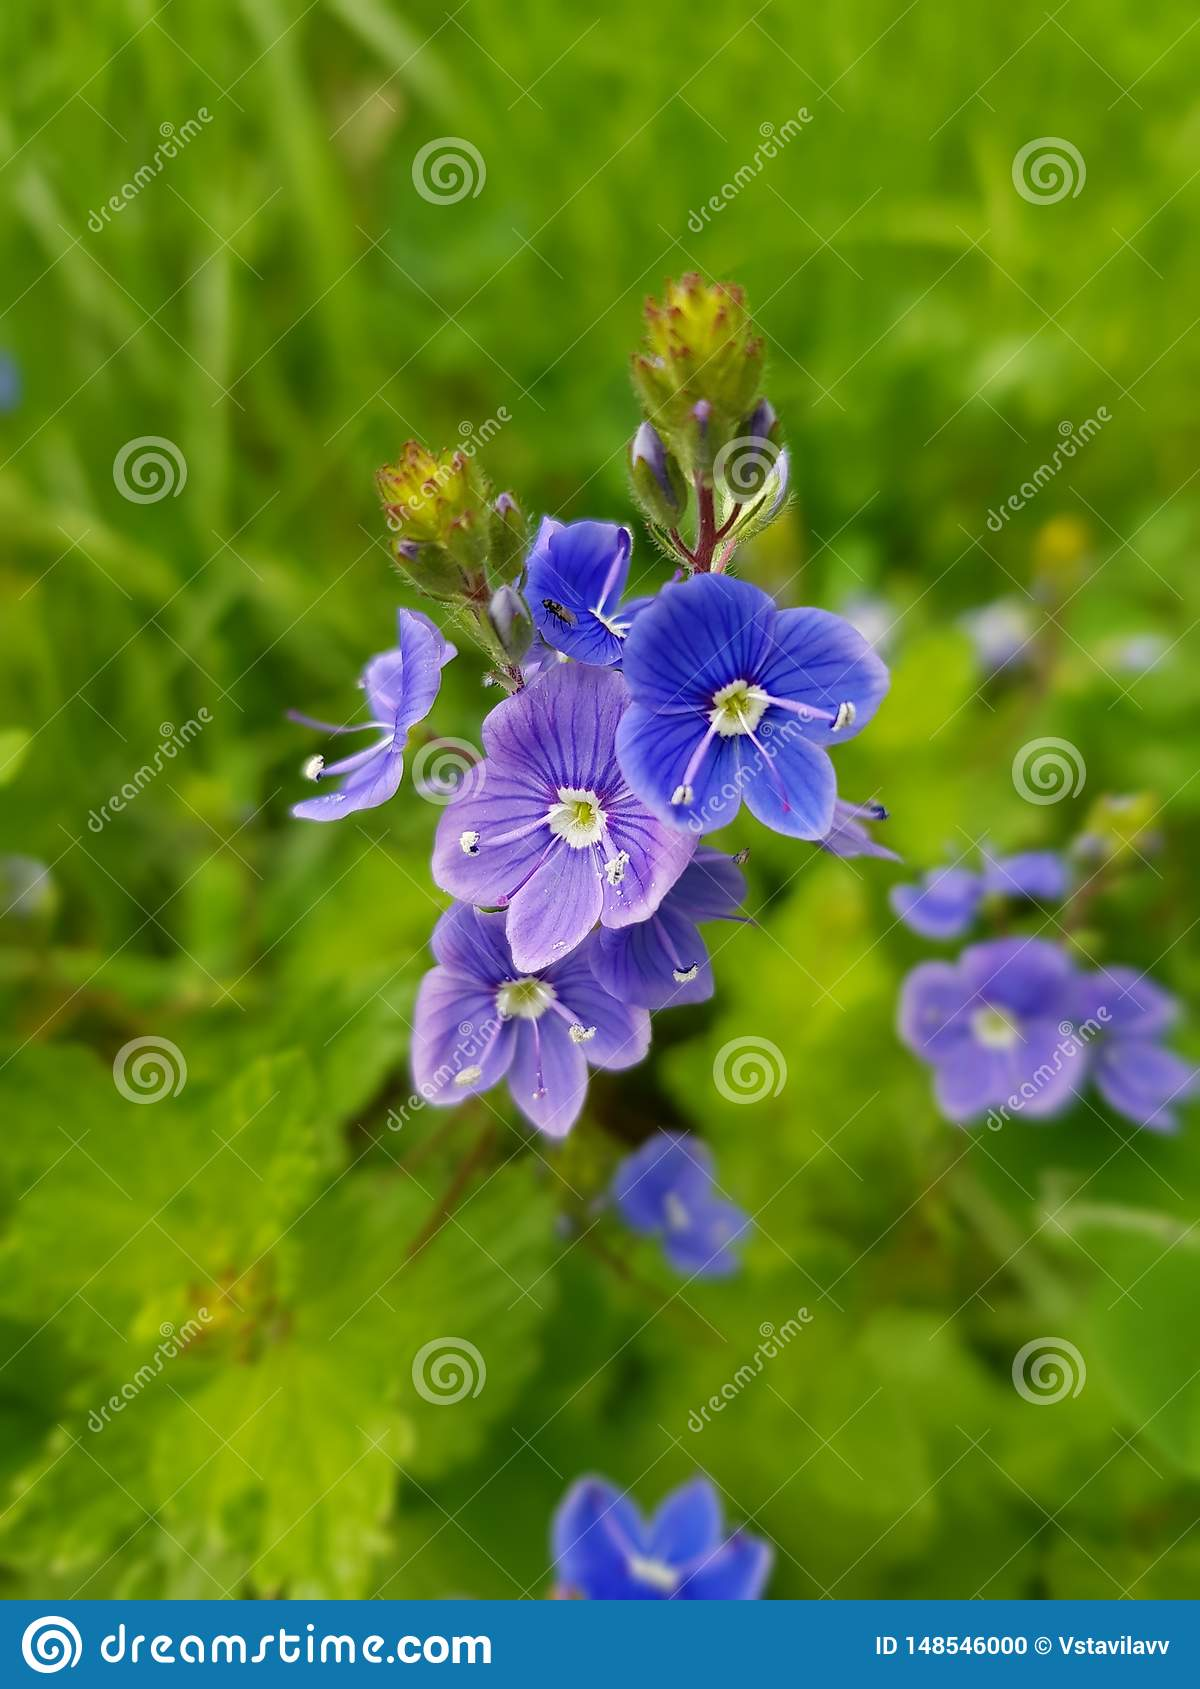 Incredibly cute, small blue with white, violet flowers.